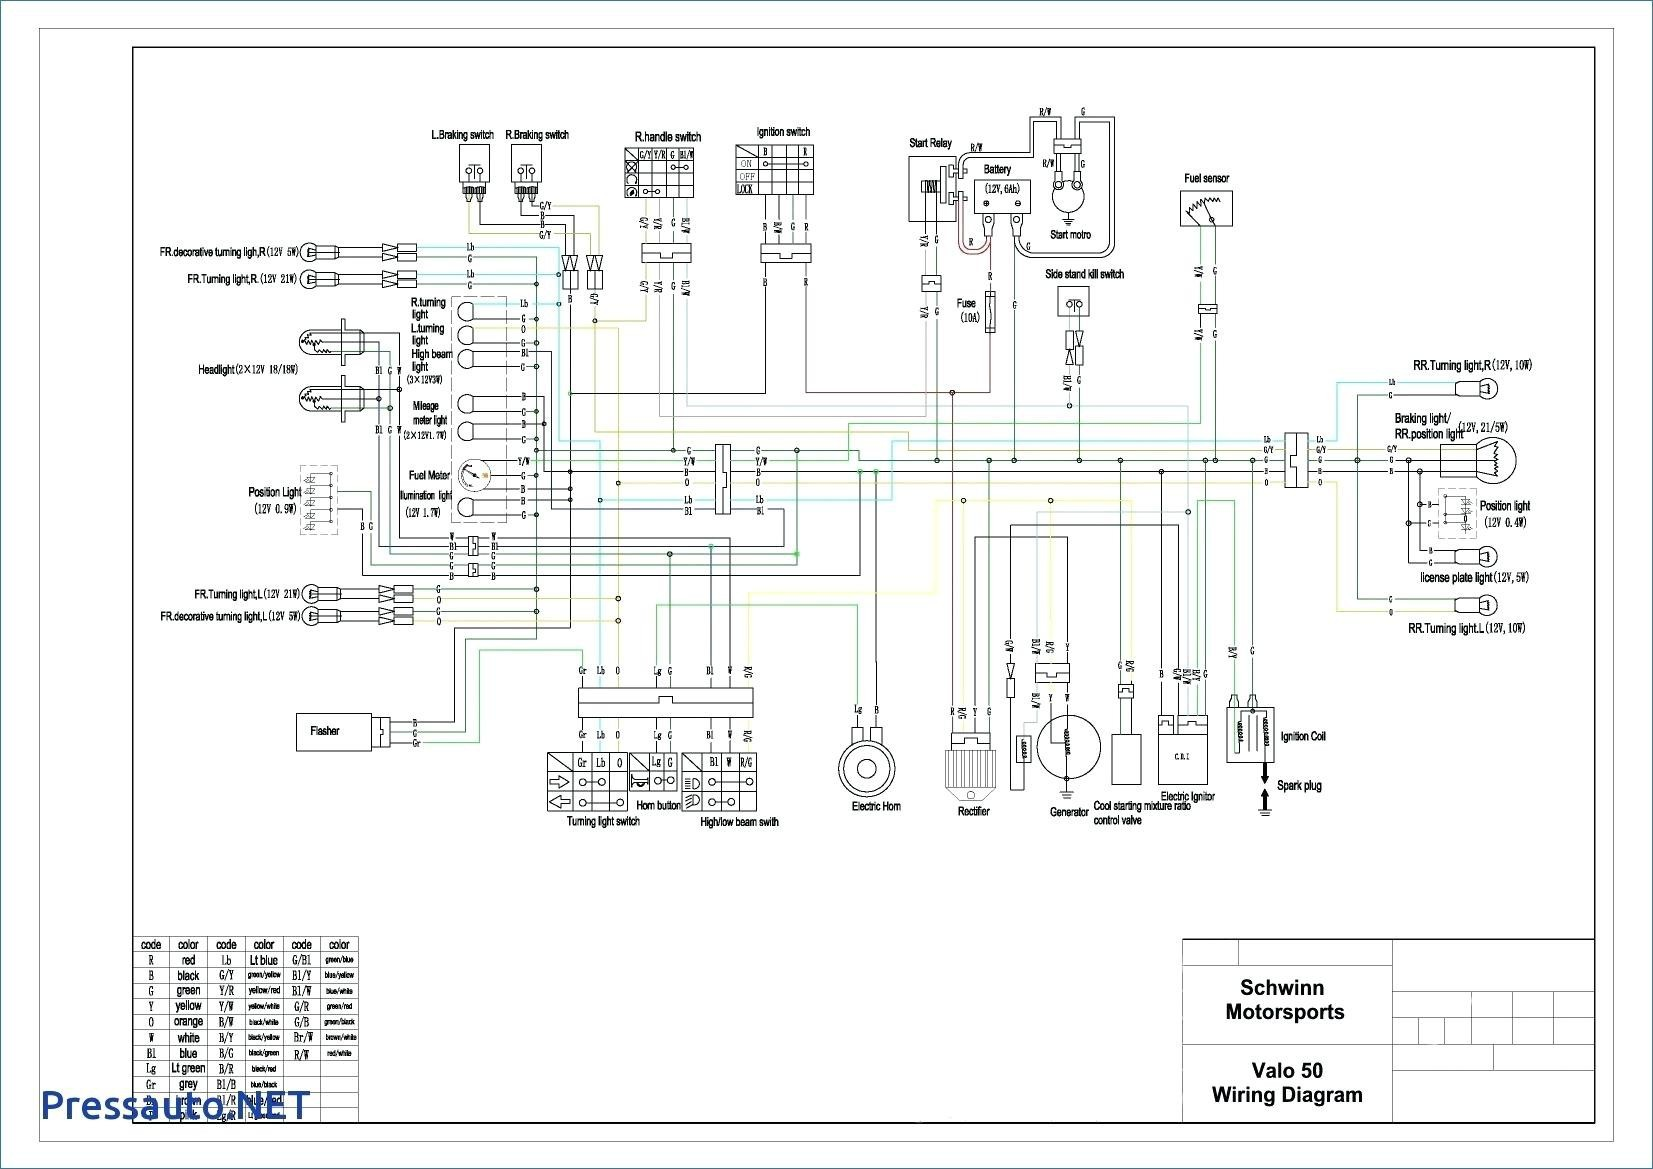 hight resolution of dish work wiring diagrams wiring diagram name dish work hd wiring diagram free picture wiring diagram